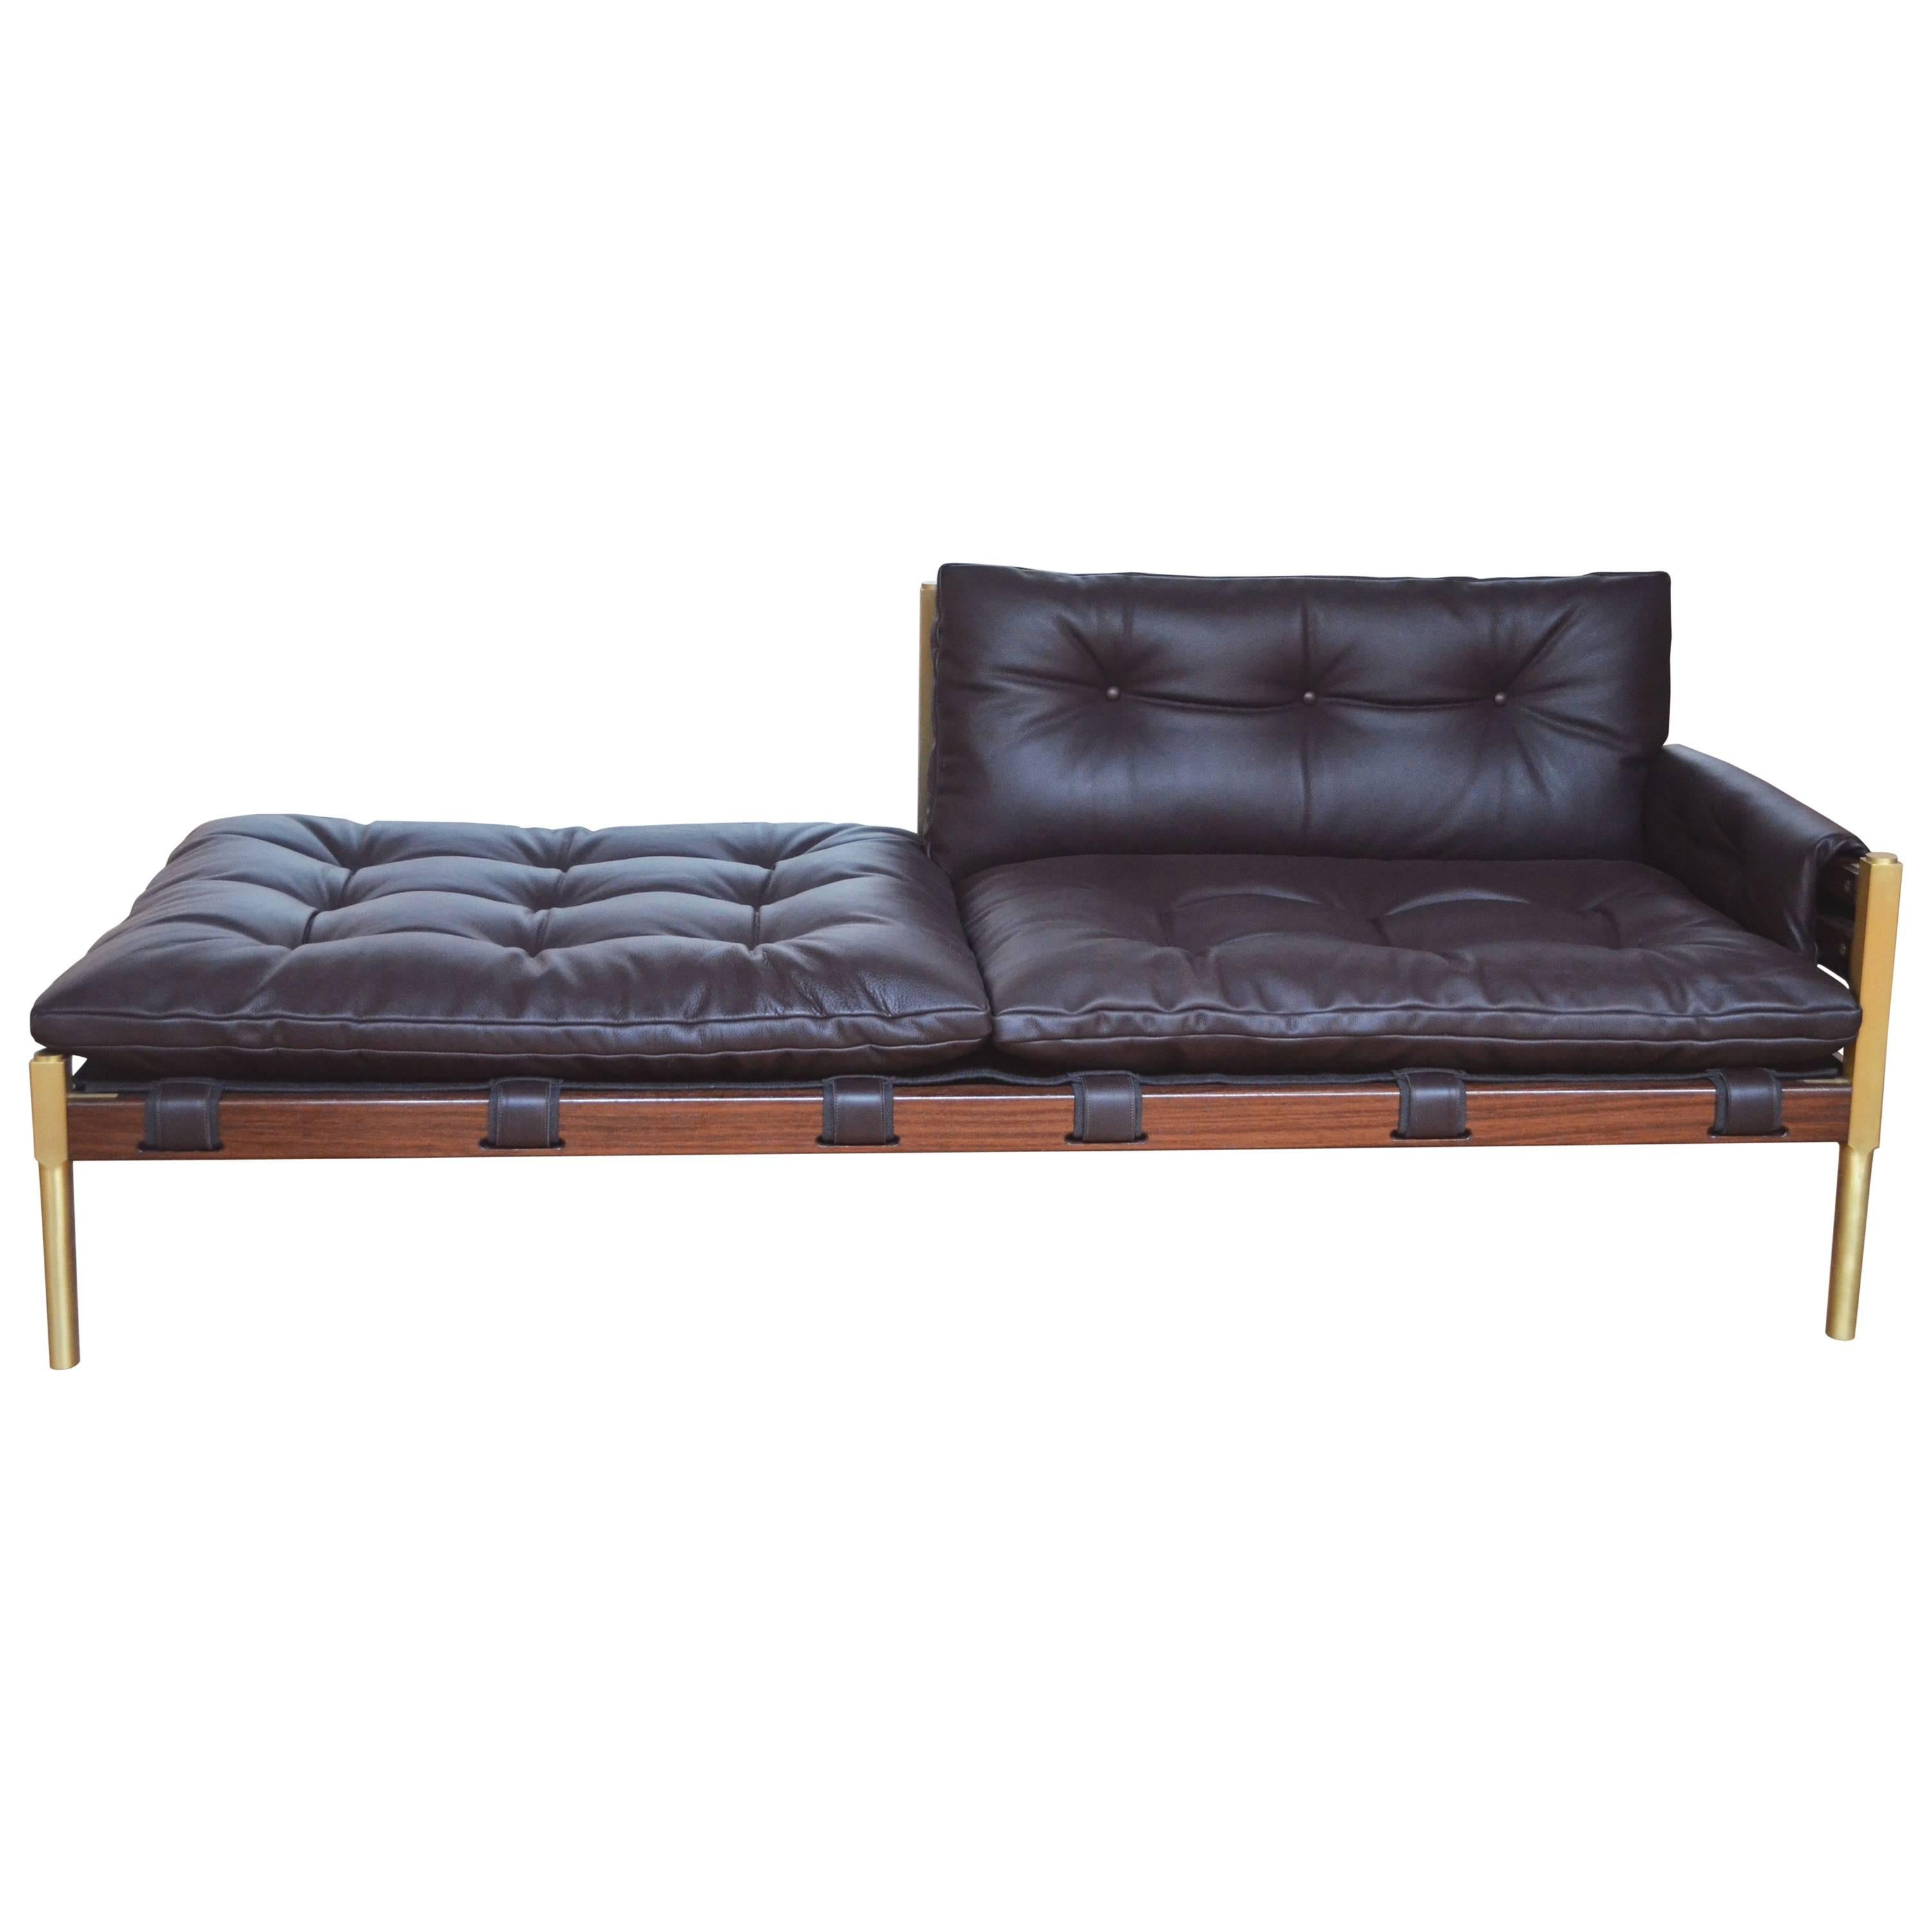 Sofa Jequitiba Nova America Chaise Atoa By Paulo Alves Handcrafted In Brazil